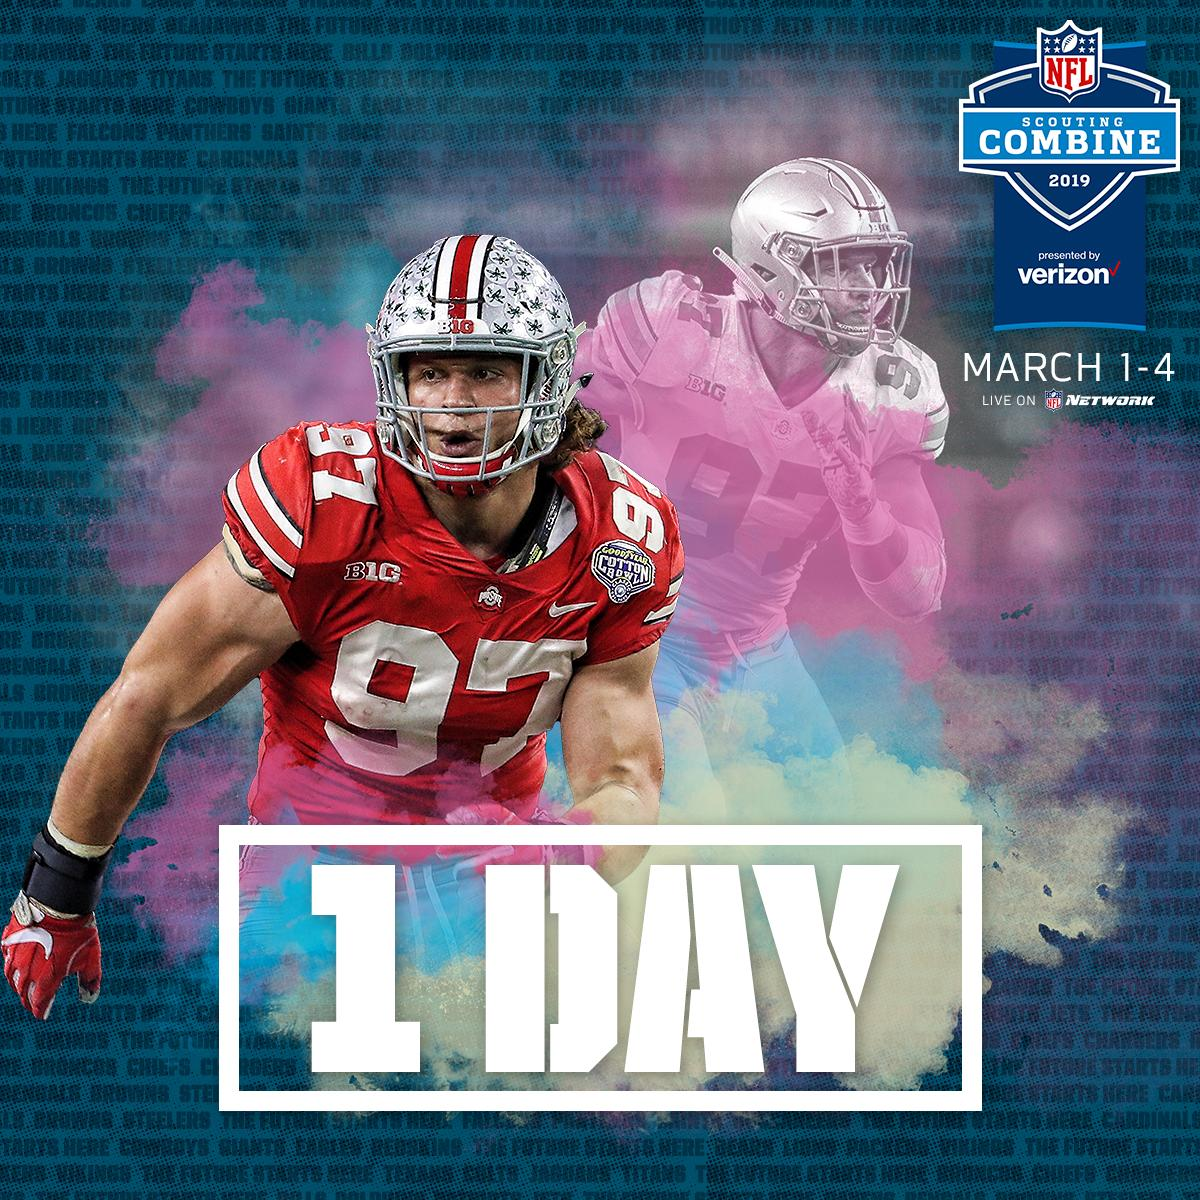 His dad: John Bosa. His brother: @jbbigbear After 17.5 sacks at @OhioStateFB… Nick Bosa's entering the family business. And that business is chasing quarterbacks DOWN. 📺: 2019 #NFLCombine starts tomorrow on @nflnetwork